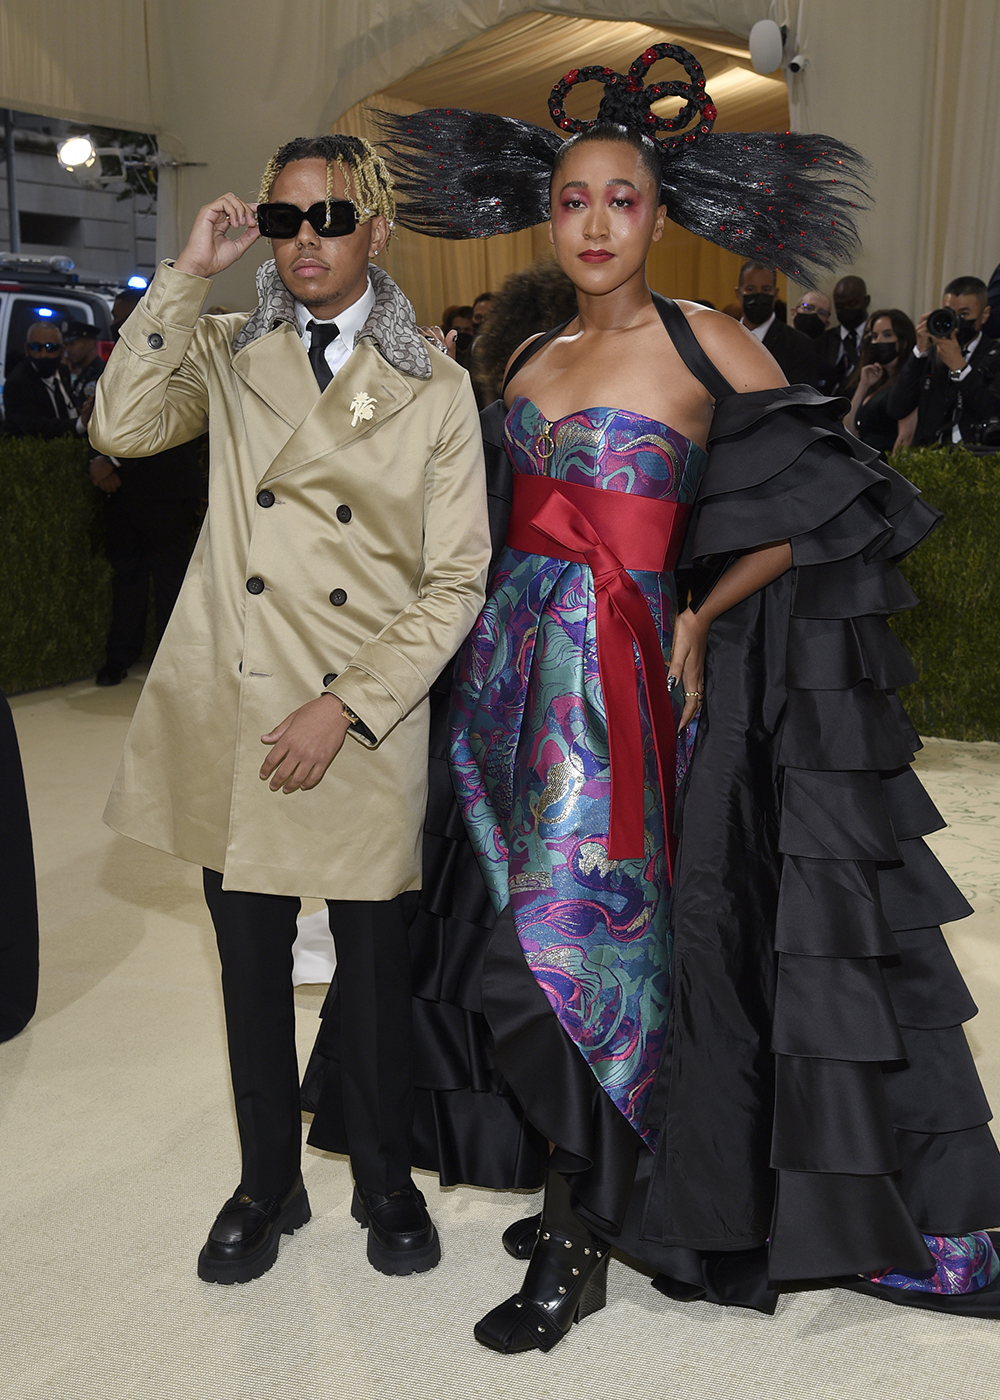 """Cordae Dunston, left, and Naomi Osaka attend The Metropolitan Museum of Art's Costume Institute benefit gala celebrating the opening of the """"In America: A Lexicon of Fashion"""" exhibition on Monday, Sept. 13, 2021, in New York. (Photo by Evan Agostini/Invision/AP)"""